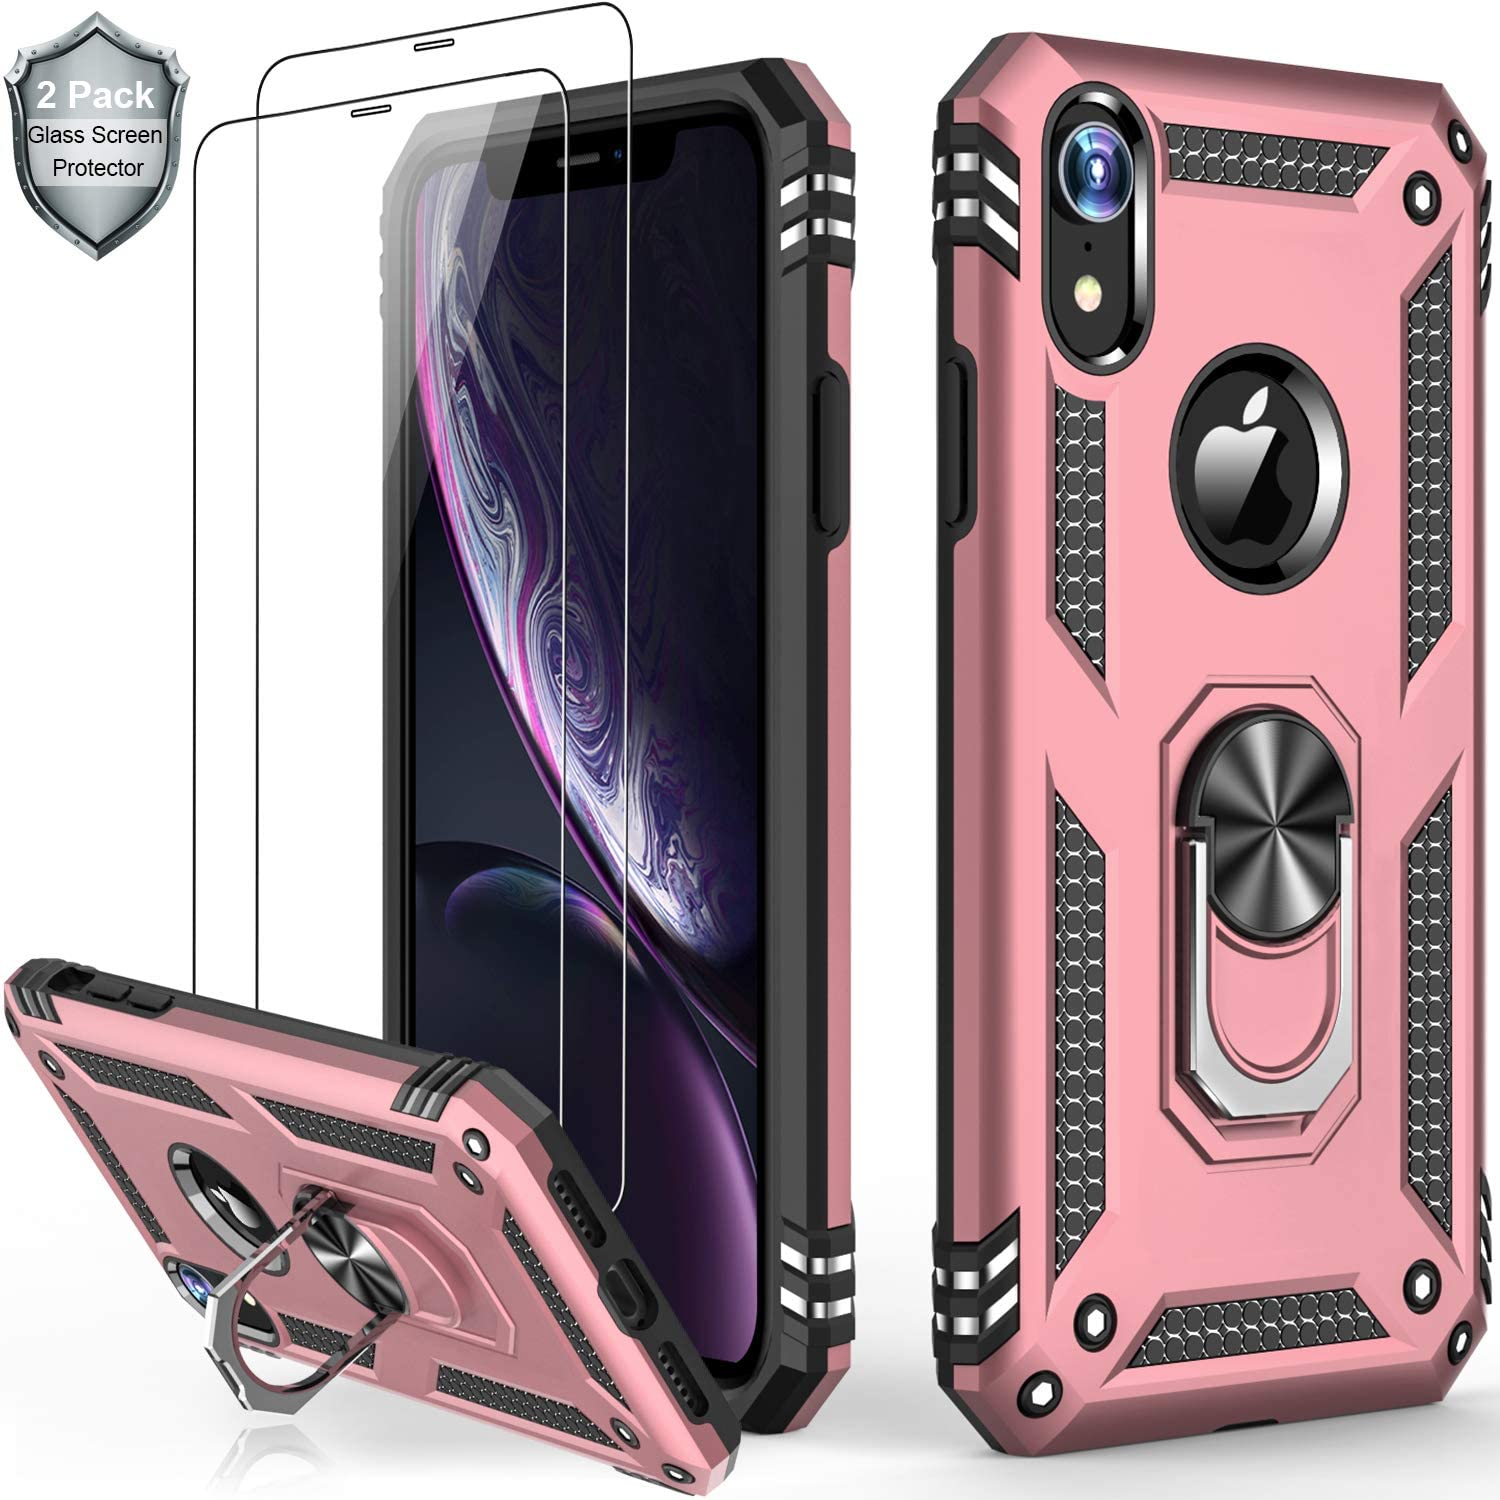 iPhone Xs Max Case with Tempered Glass Screen Protector,Military Grade 16ft. Drop Tested Cover with Magnetic Ring Kickstand Protective Phone Case for iPhone Xs Max Rose Gold